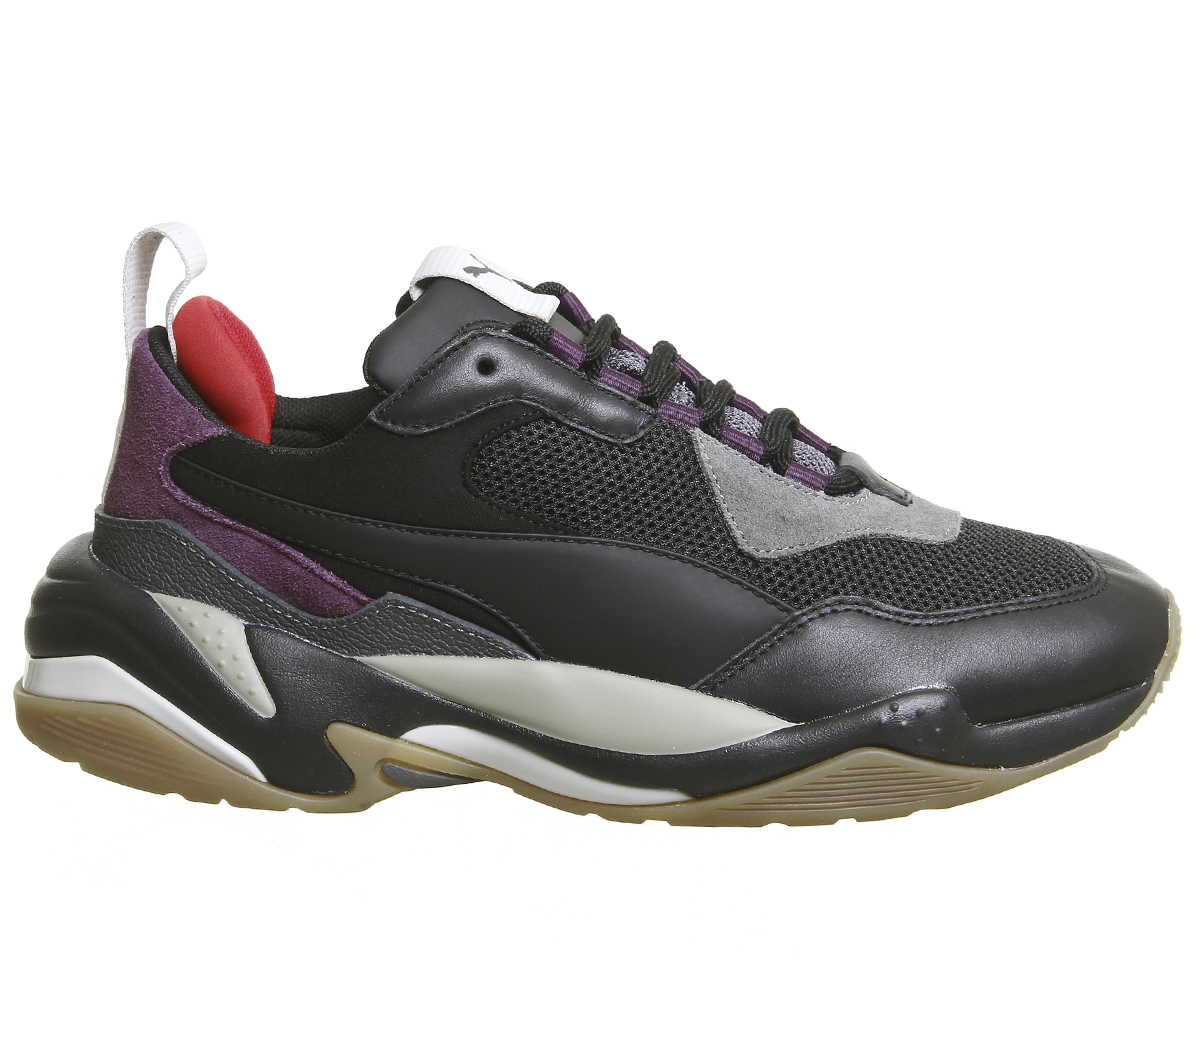 a03954022ff Mens Puma Thunder Spectra Trainers Black Grey Purple Gum Trainers ...